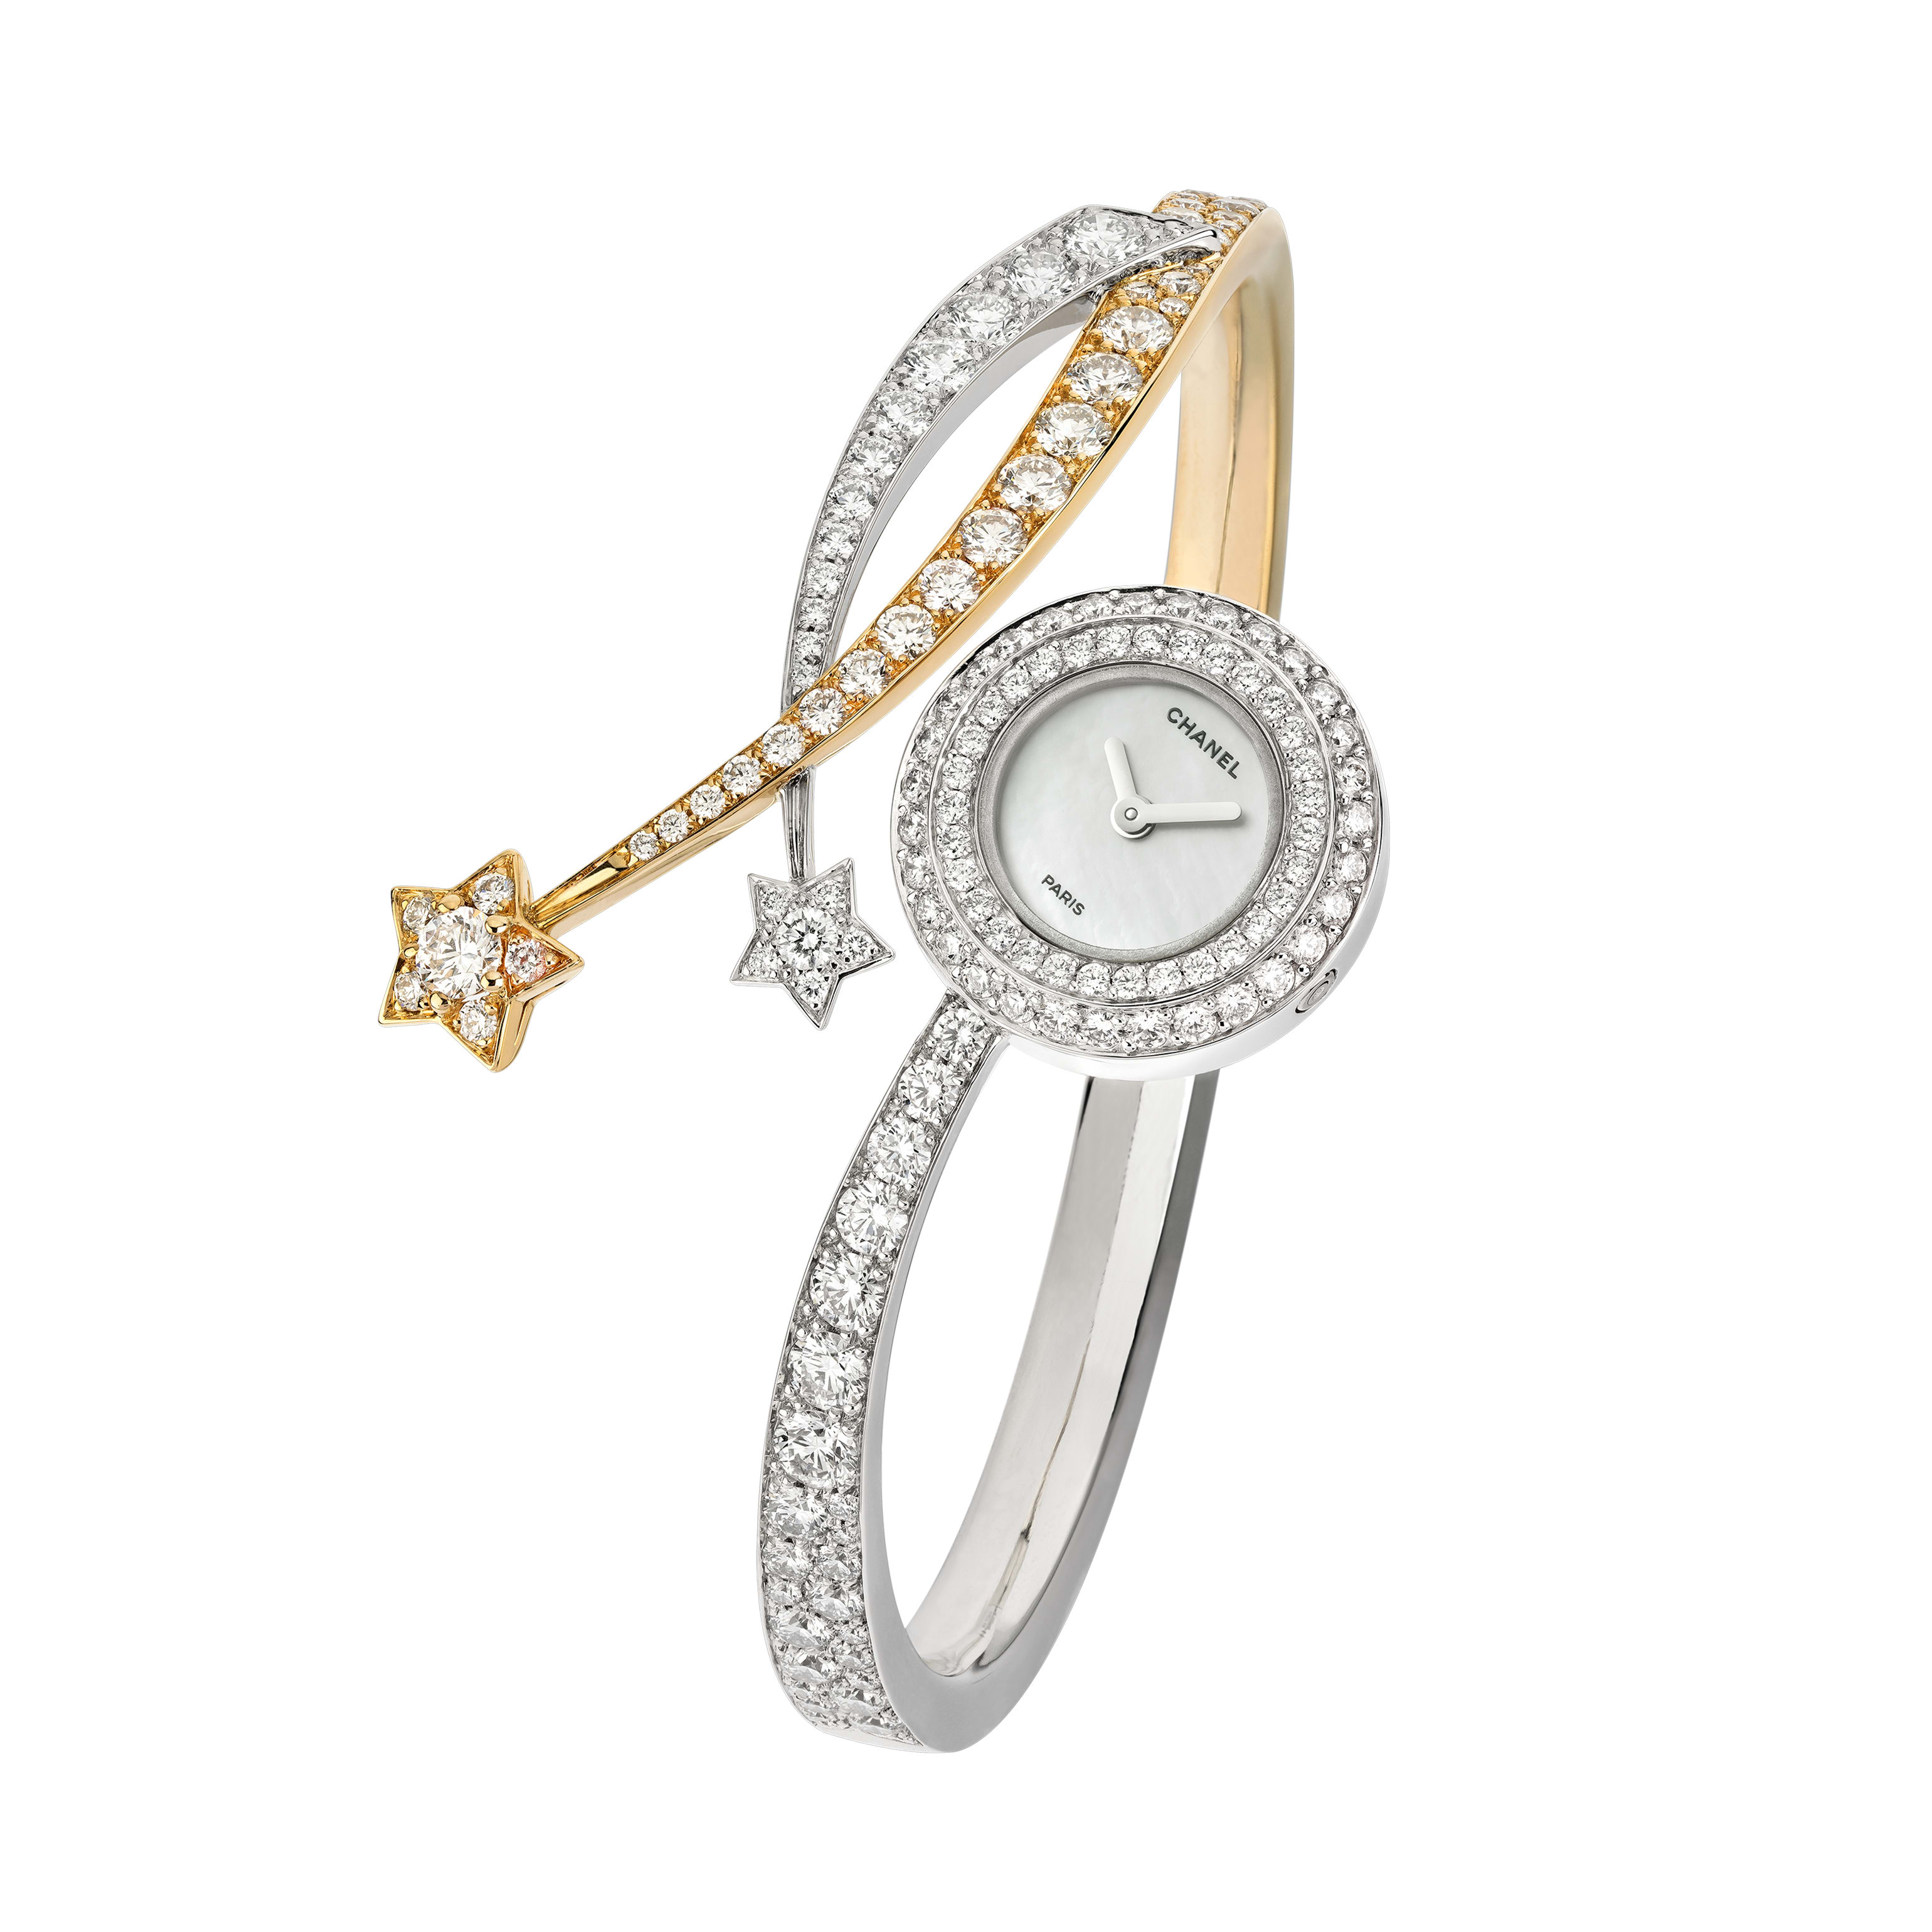 Comète Entrelacs Watch - Comète Entrelacs Watch in yellow gold, white gold and diamonds - CHANEL - Default view - see standard sized version